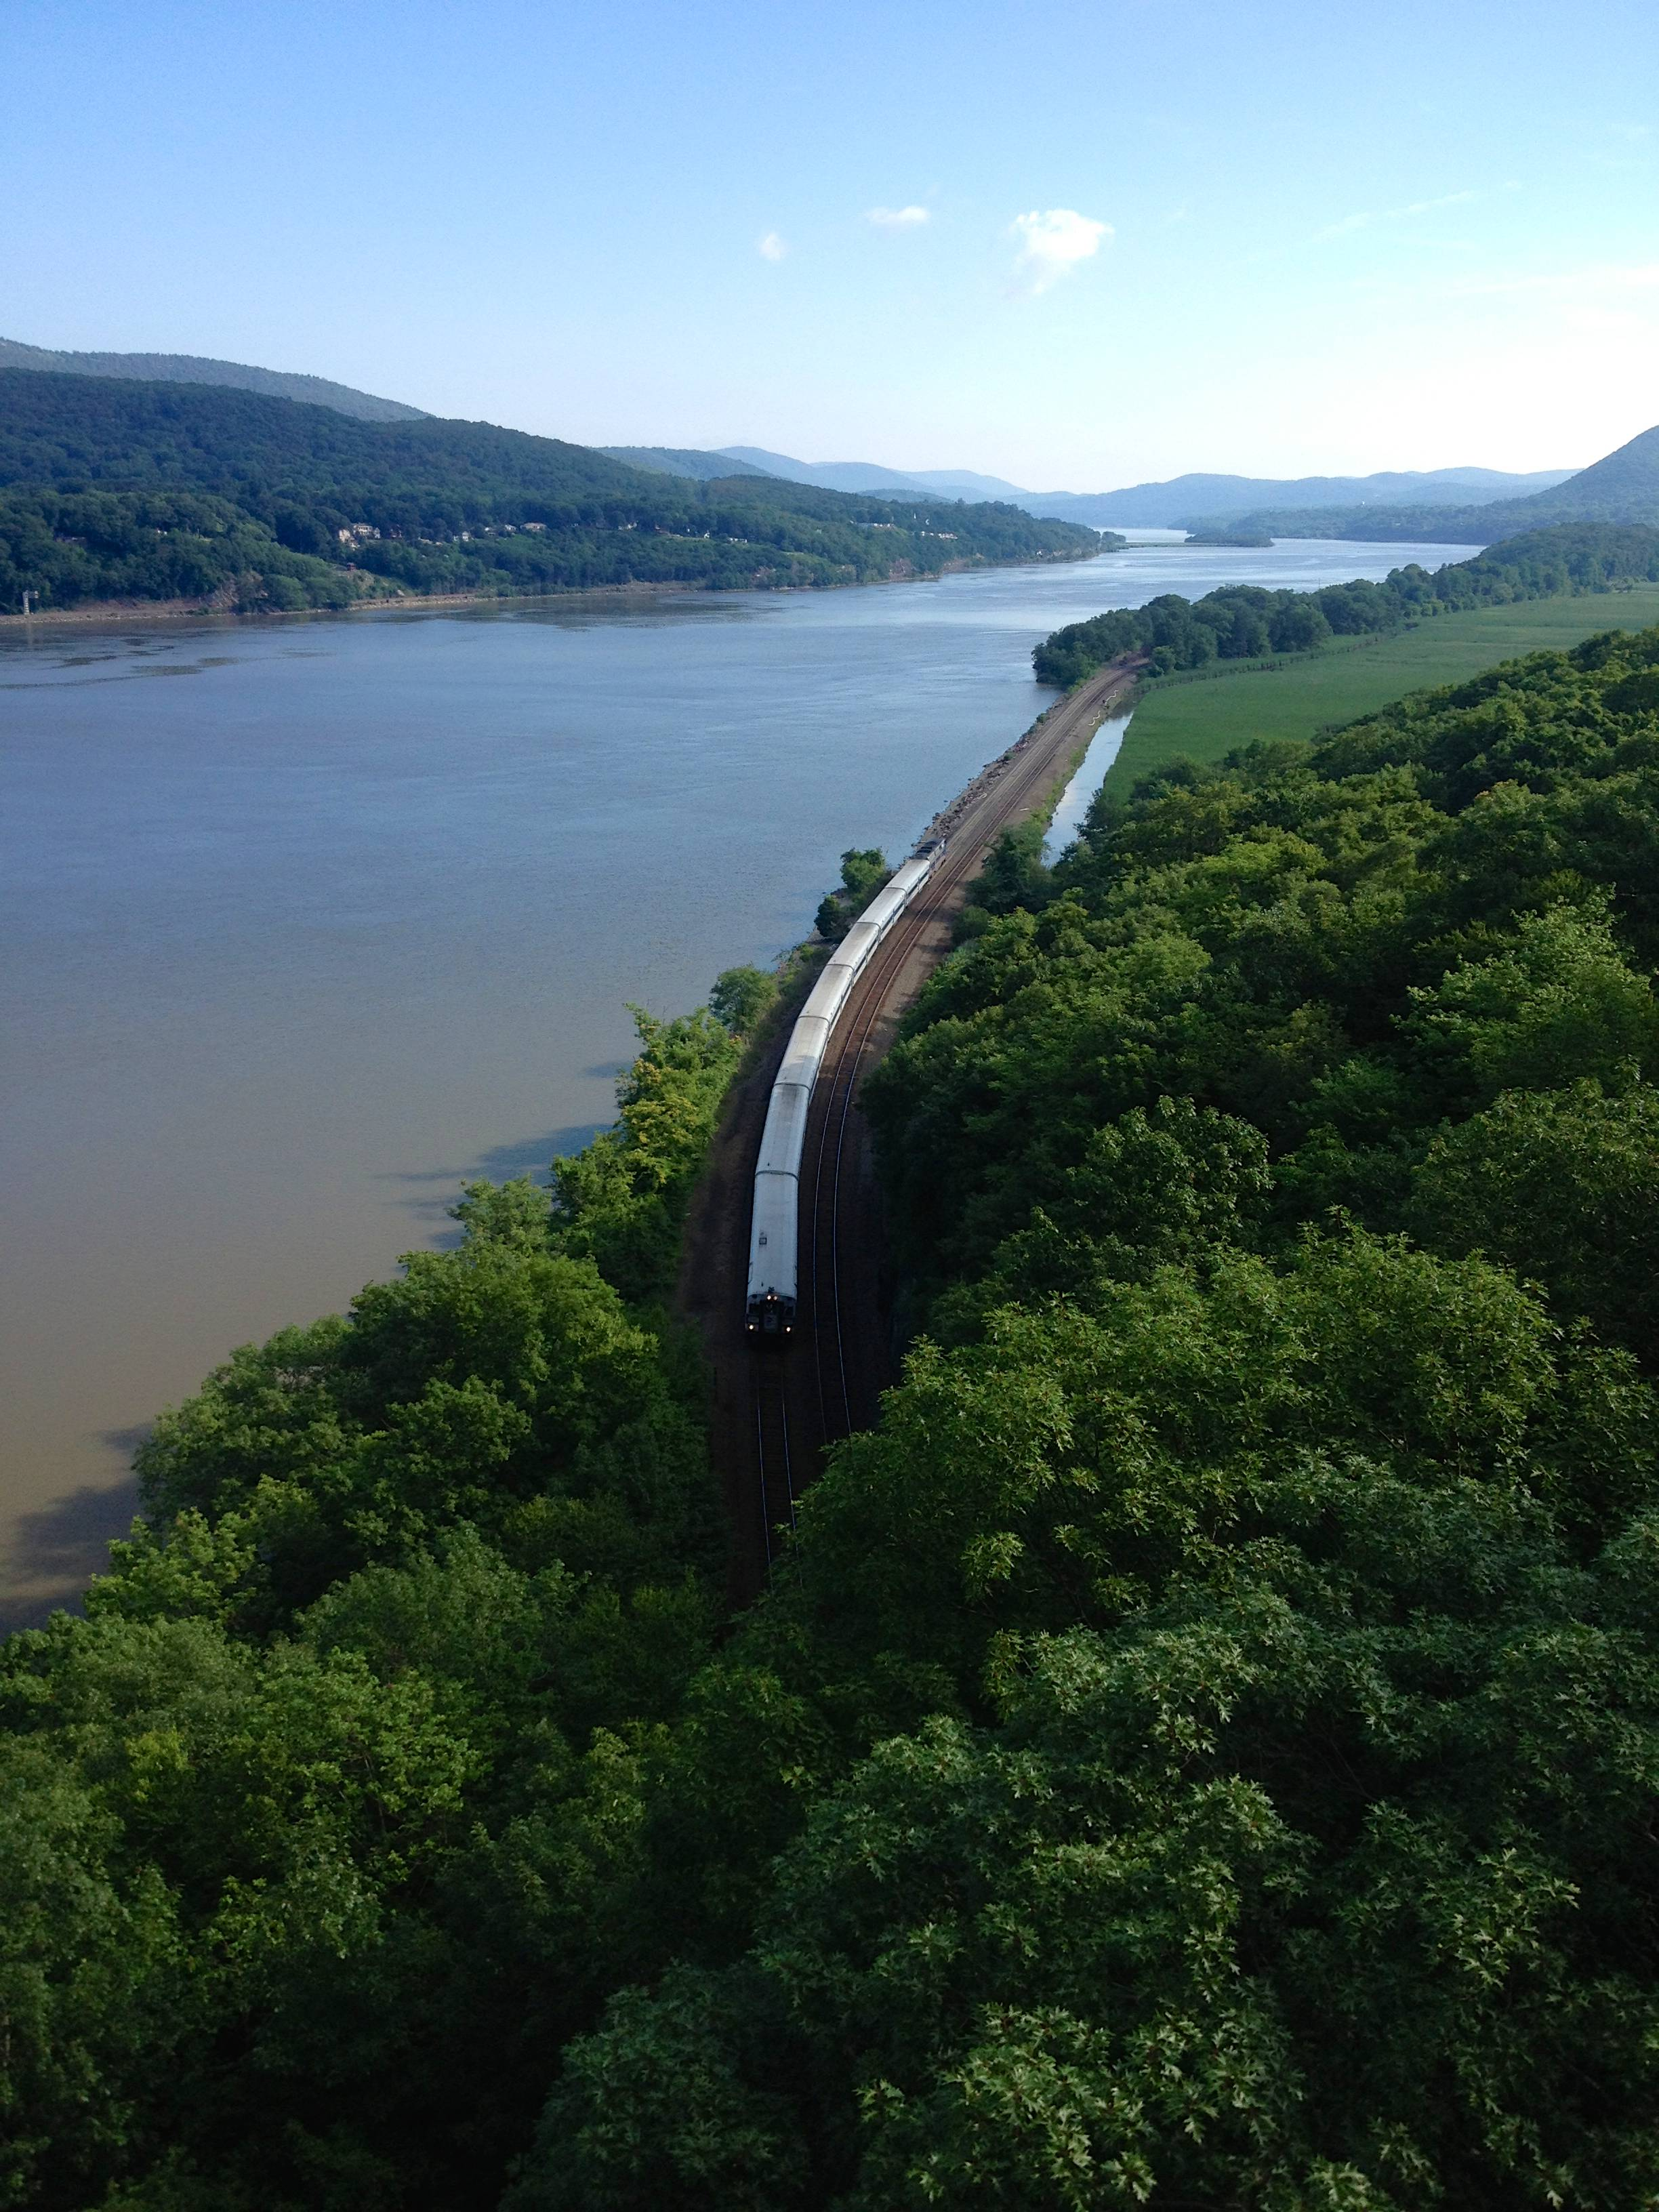 A look down from the Hudson River Bridge in Bear Mountain, NY at the commuter train heading to New York City.